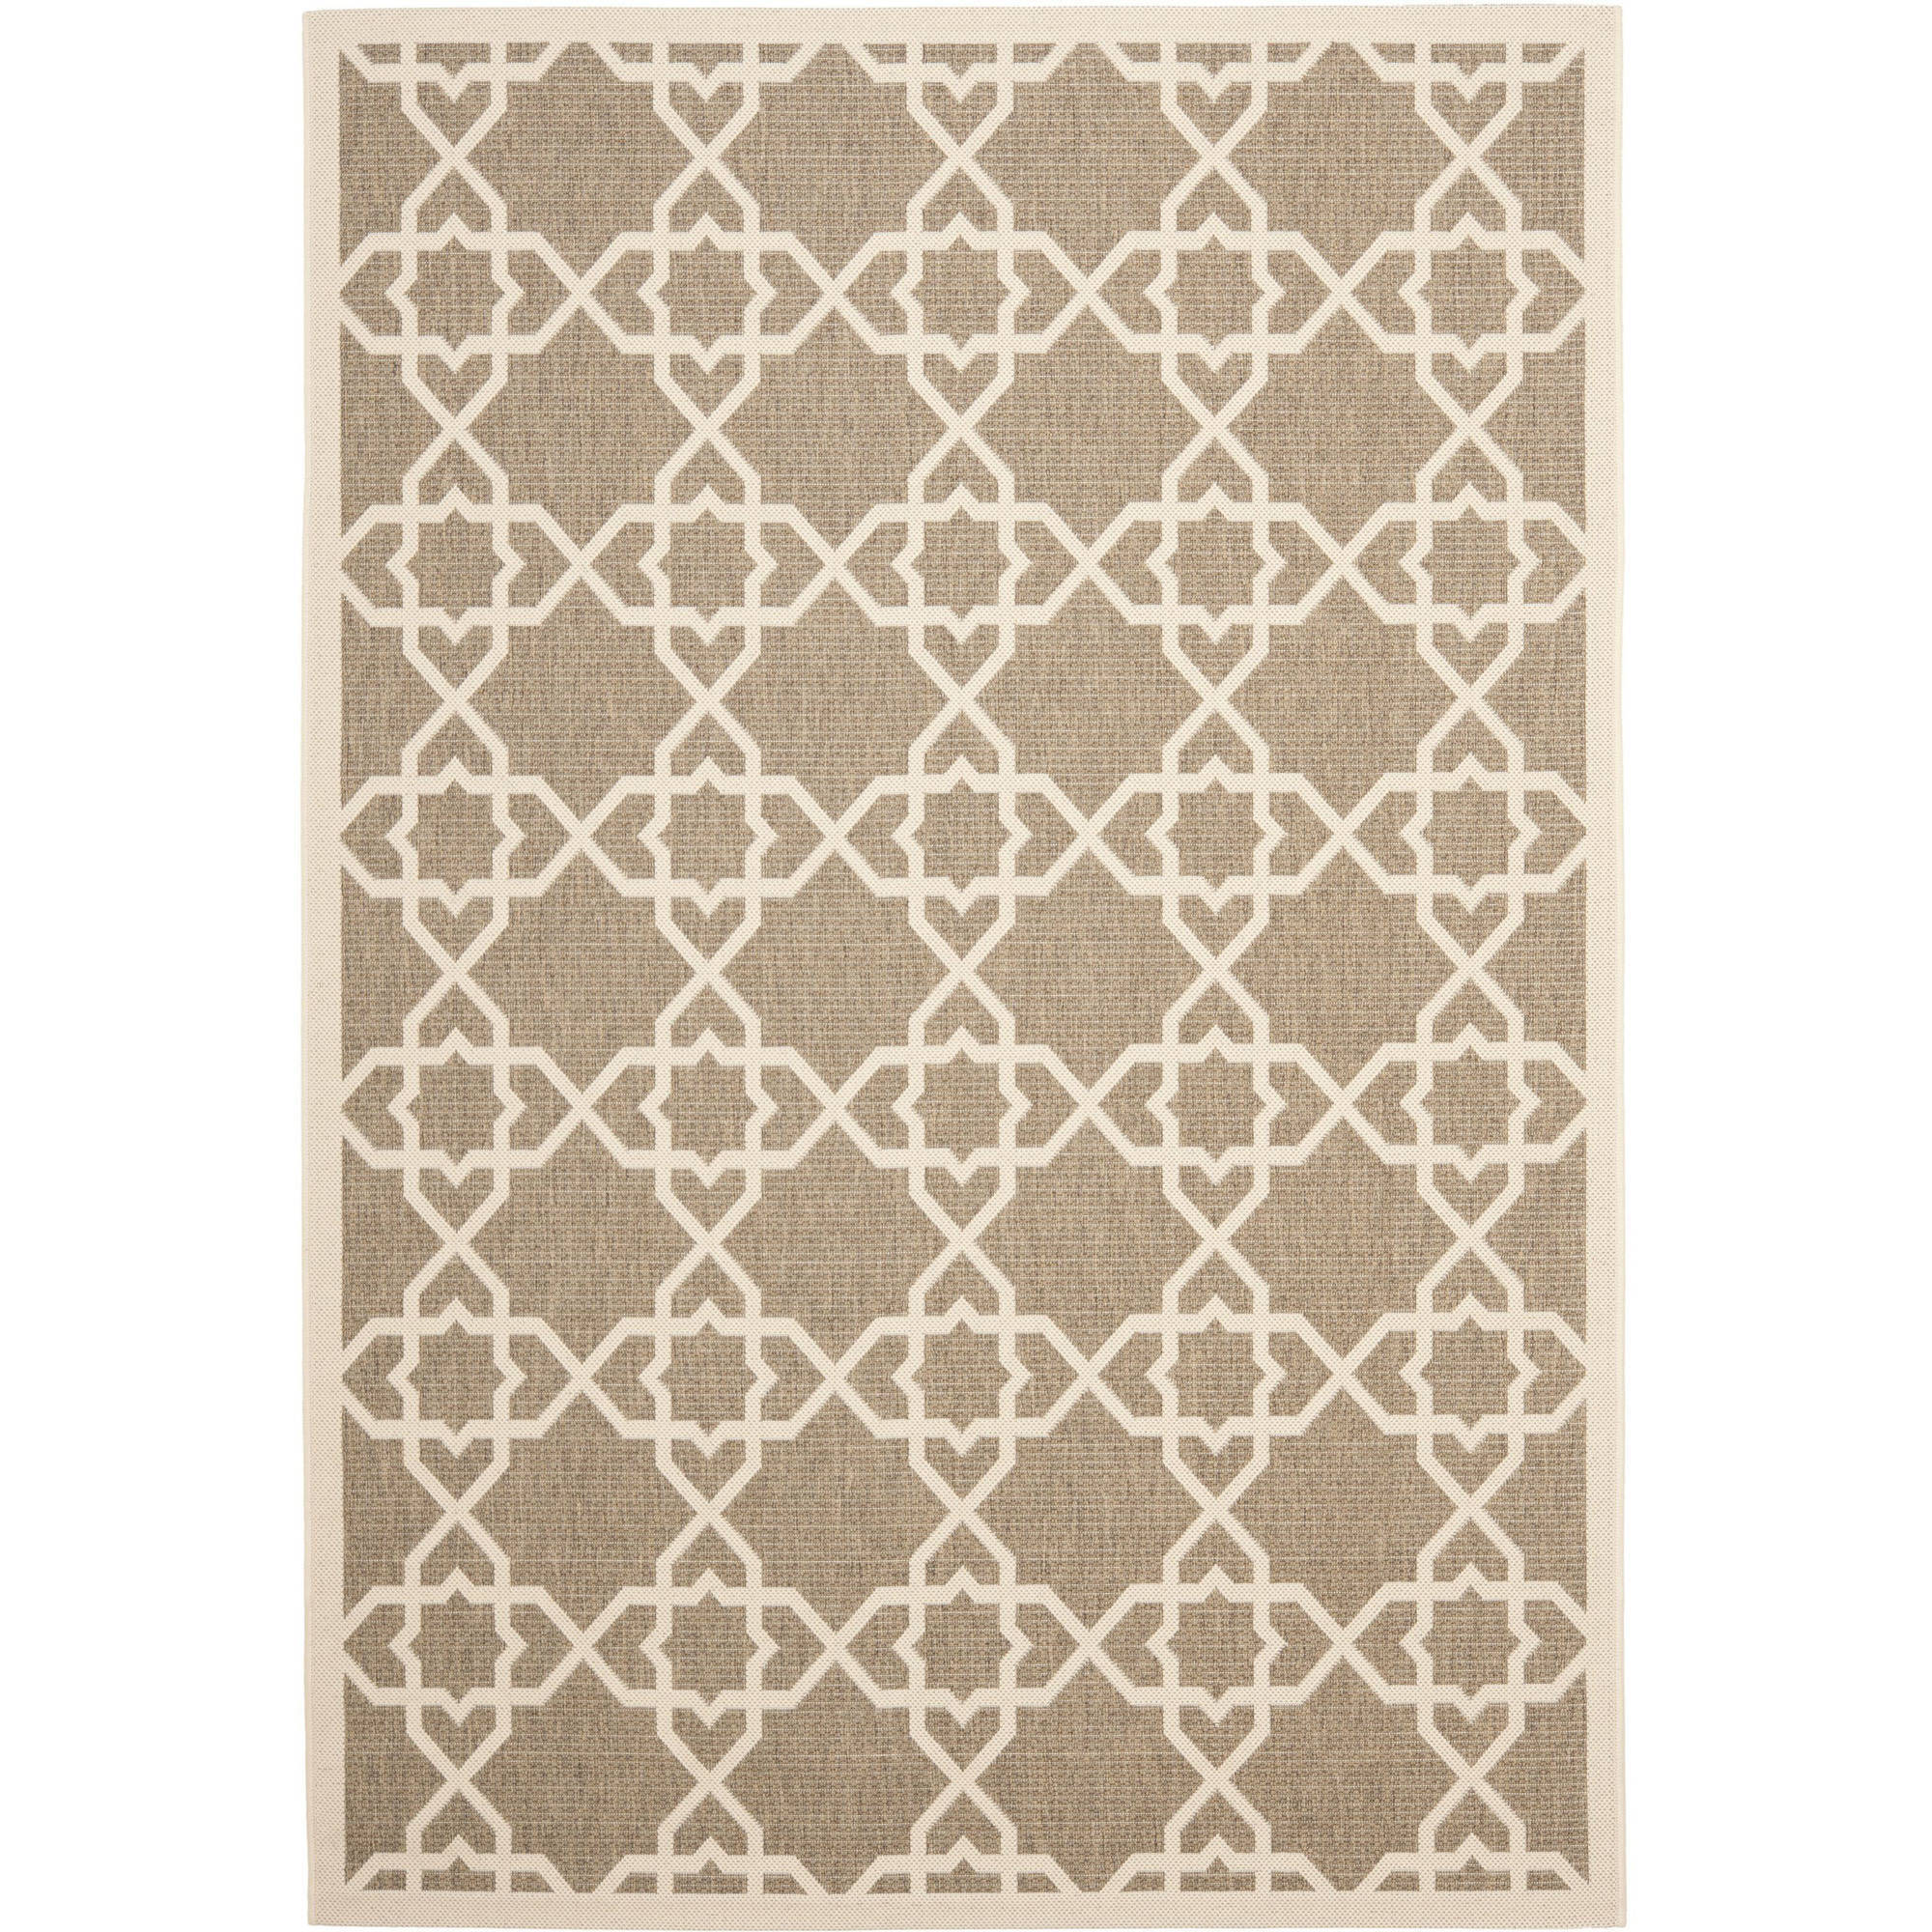 Safavieh Courtyard Caroline Power-Loomed Indoor/Outdoor Area Rug or Runner